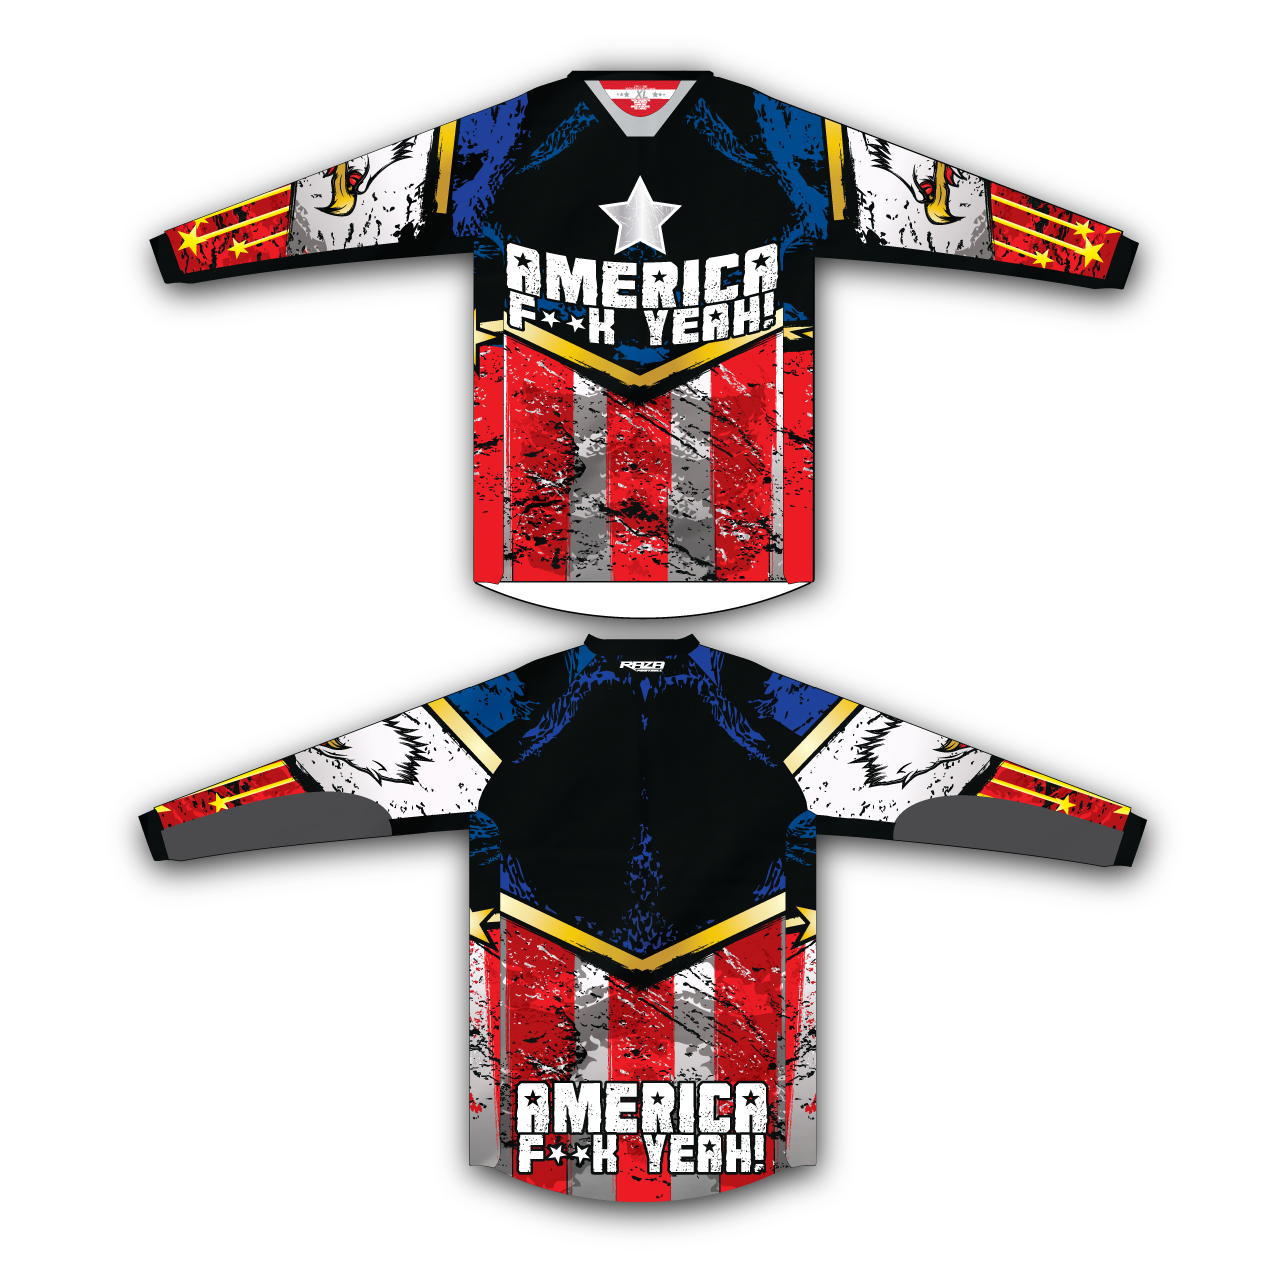 America TMX Jersey - RazaLife - TMX Jersey - RazaLife - RazaLife - paintball - custom - jerseys - sports - uniforms - woodsball - softball - baseball - basketball - soccer